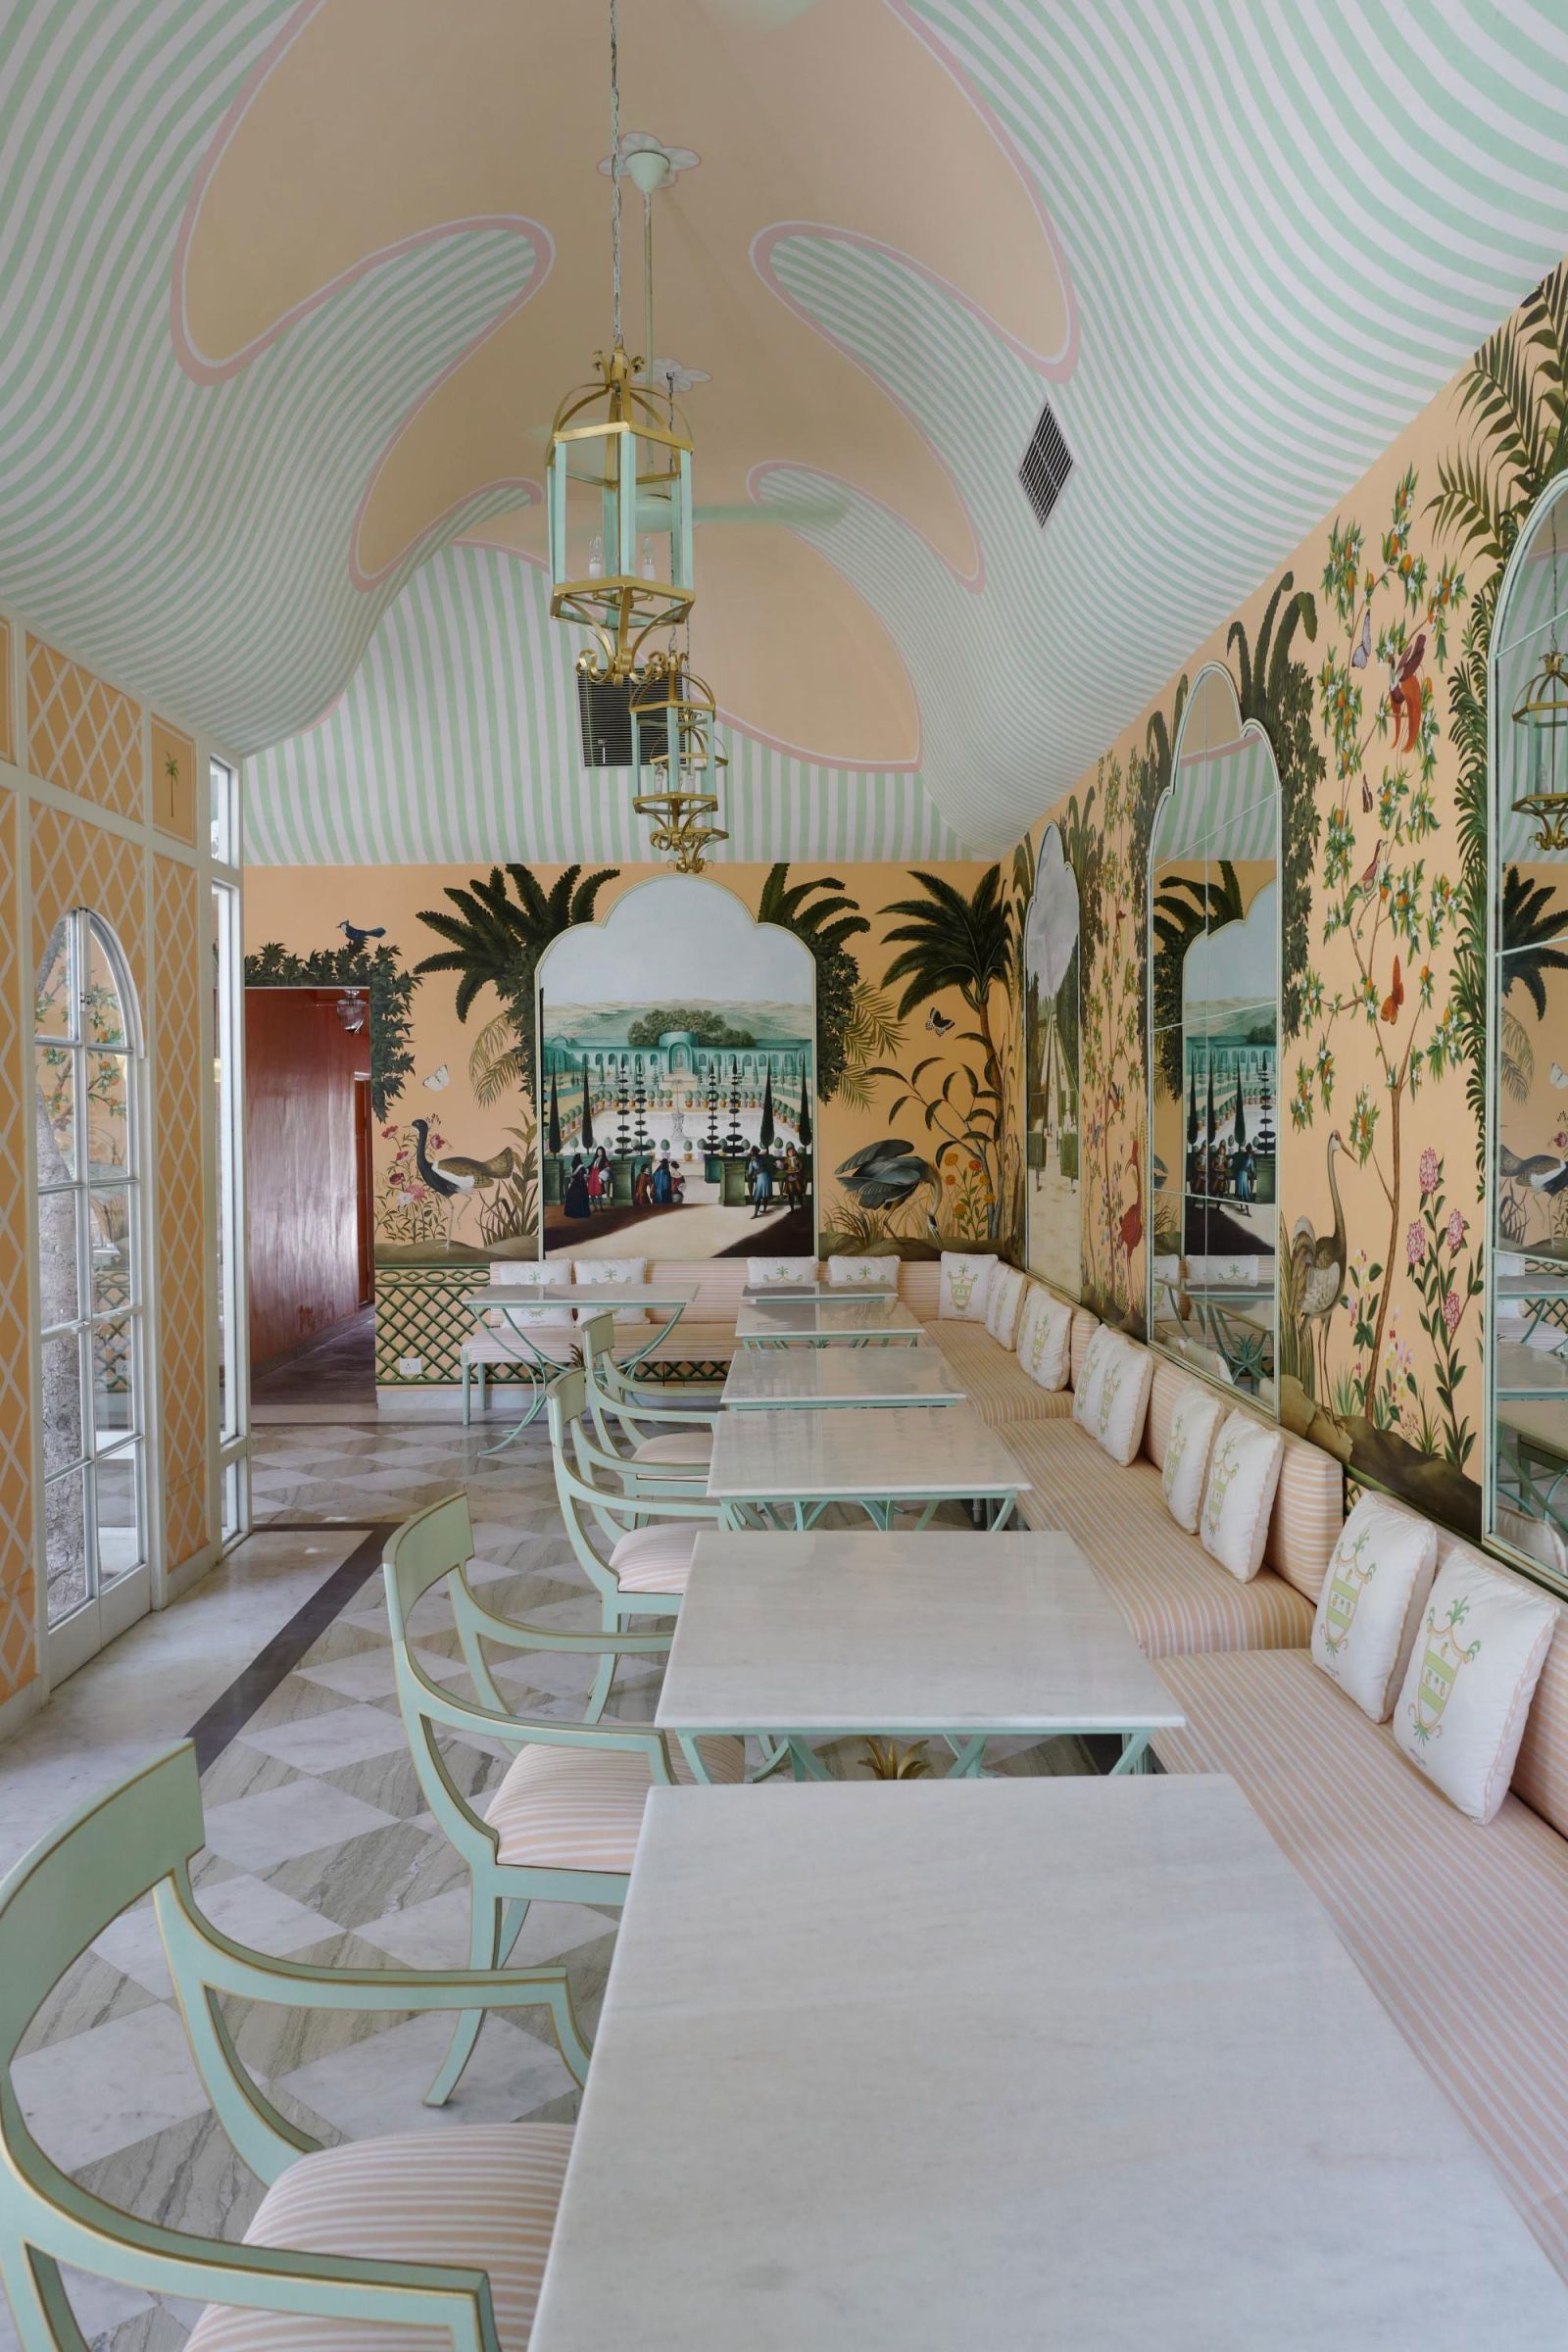 T C Exclusive A First Look At The Buzziest New Italian Restaurant Interiores Restaurante Indiano Decoracao Apartamento